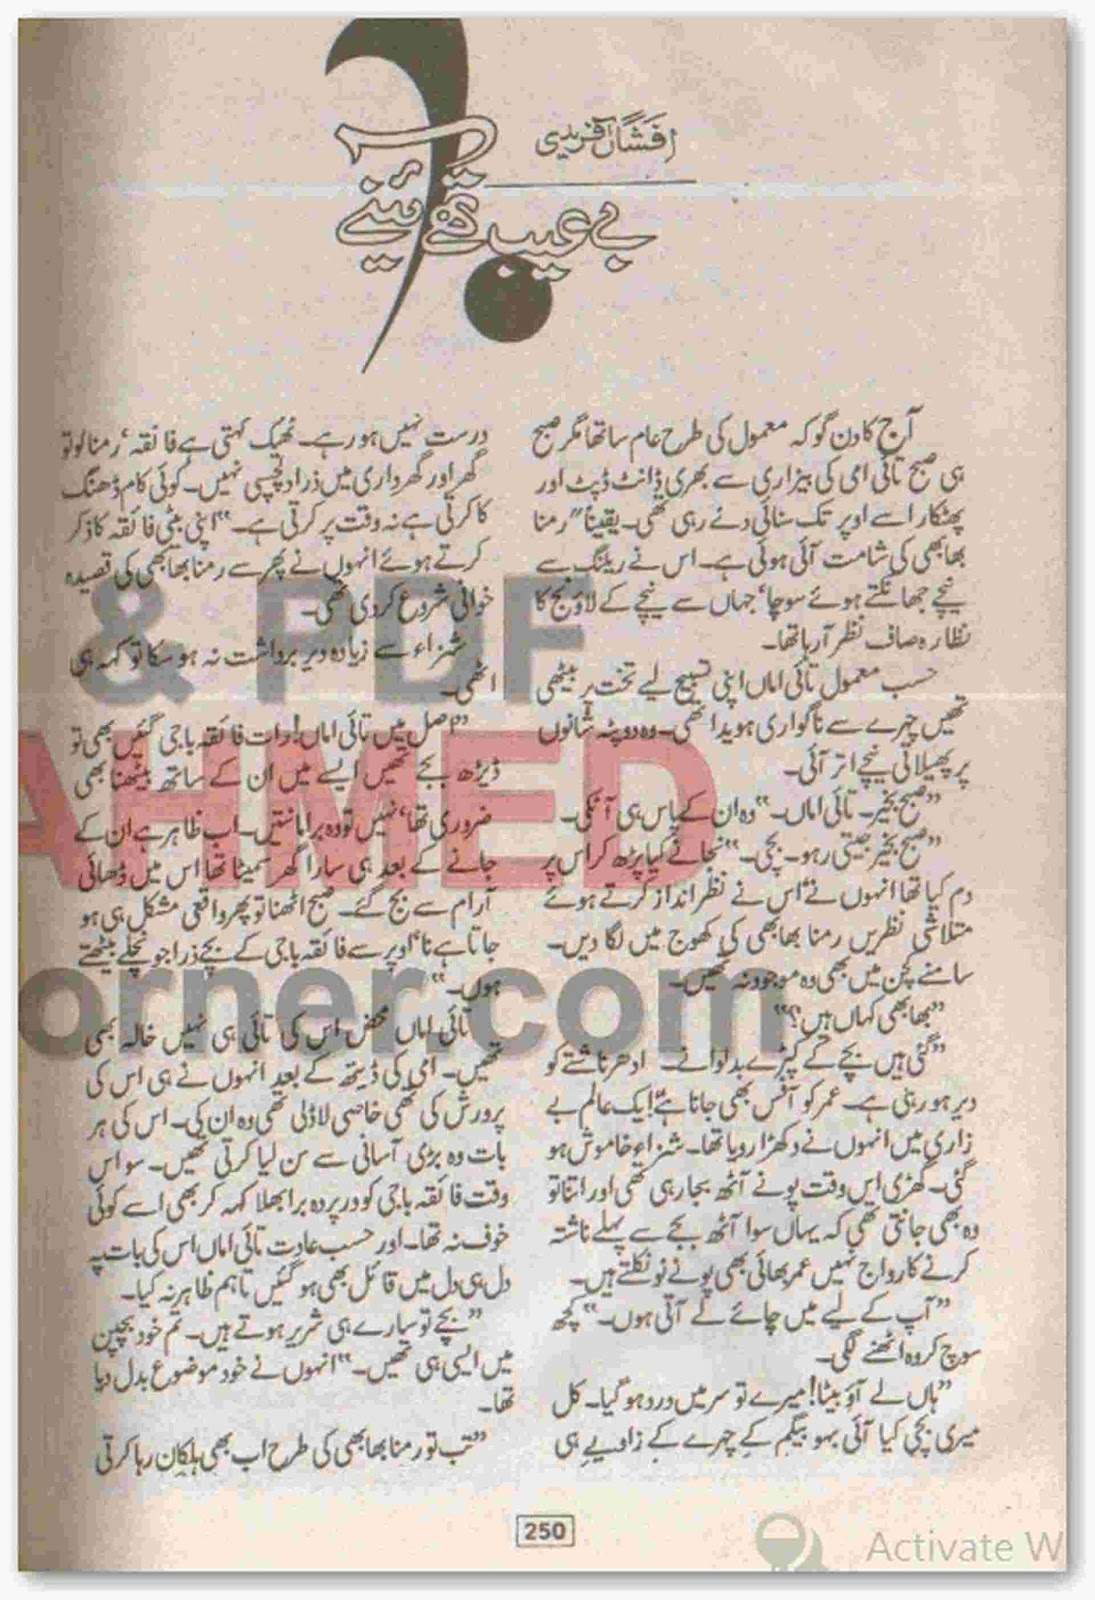 Be ayb thay aainay novel by Afshan Afridi Online Reading